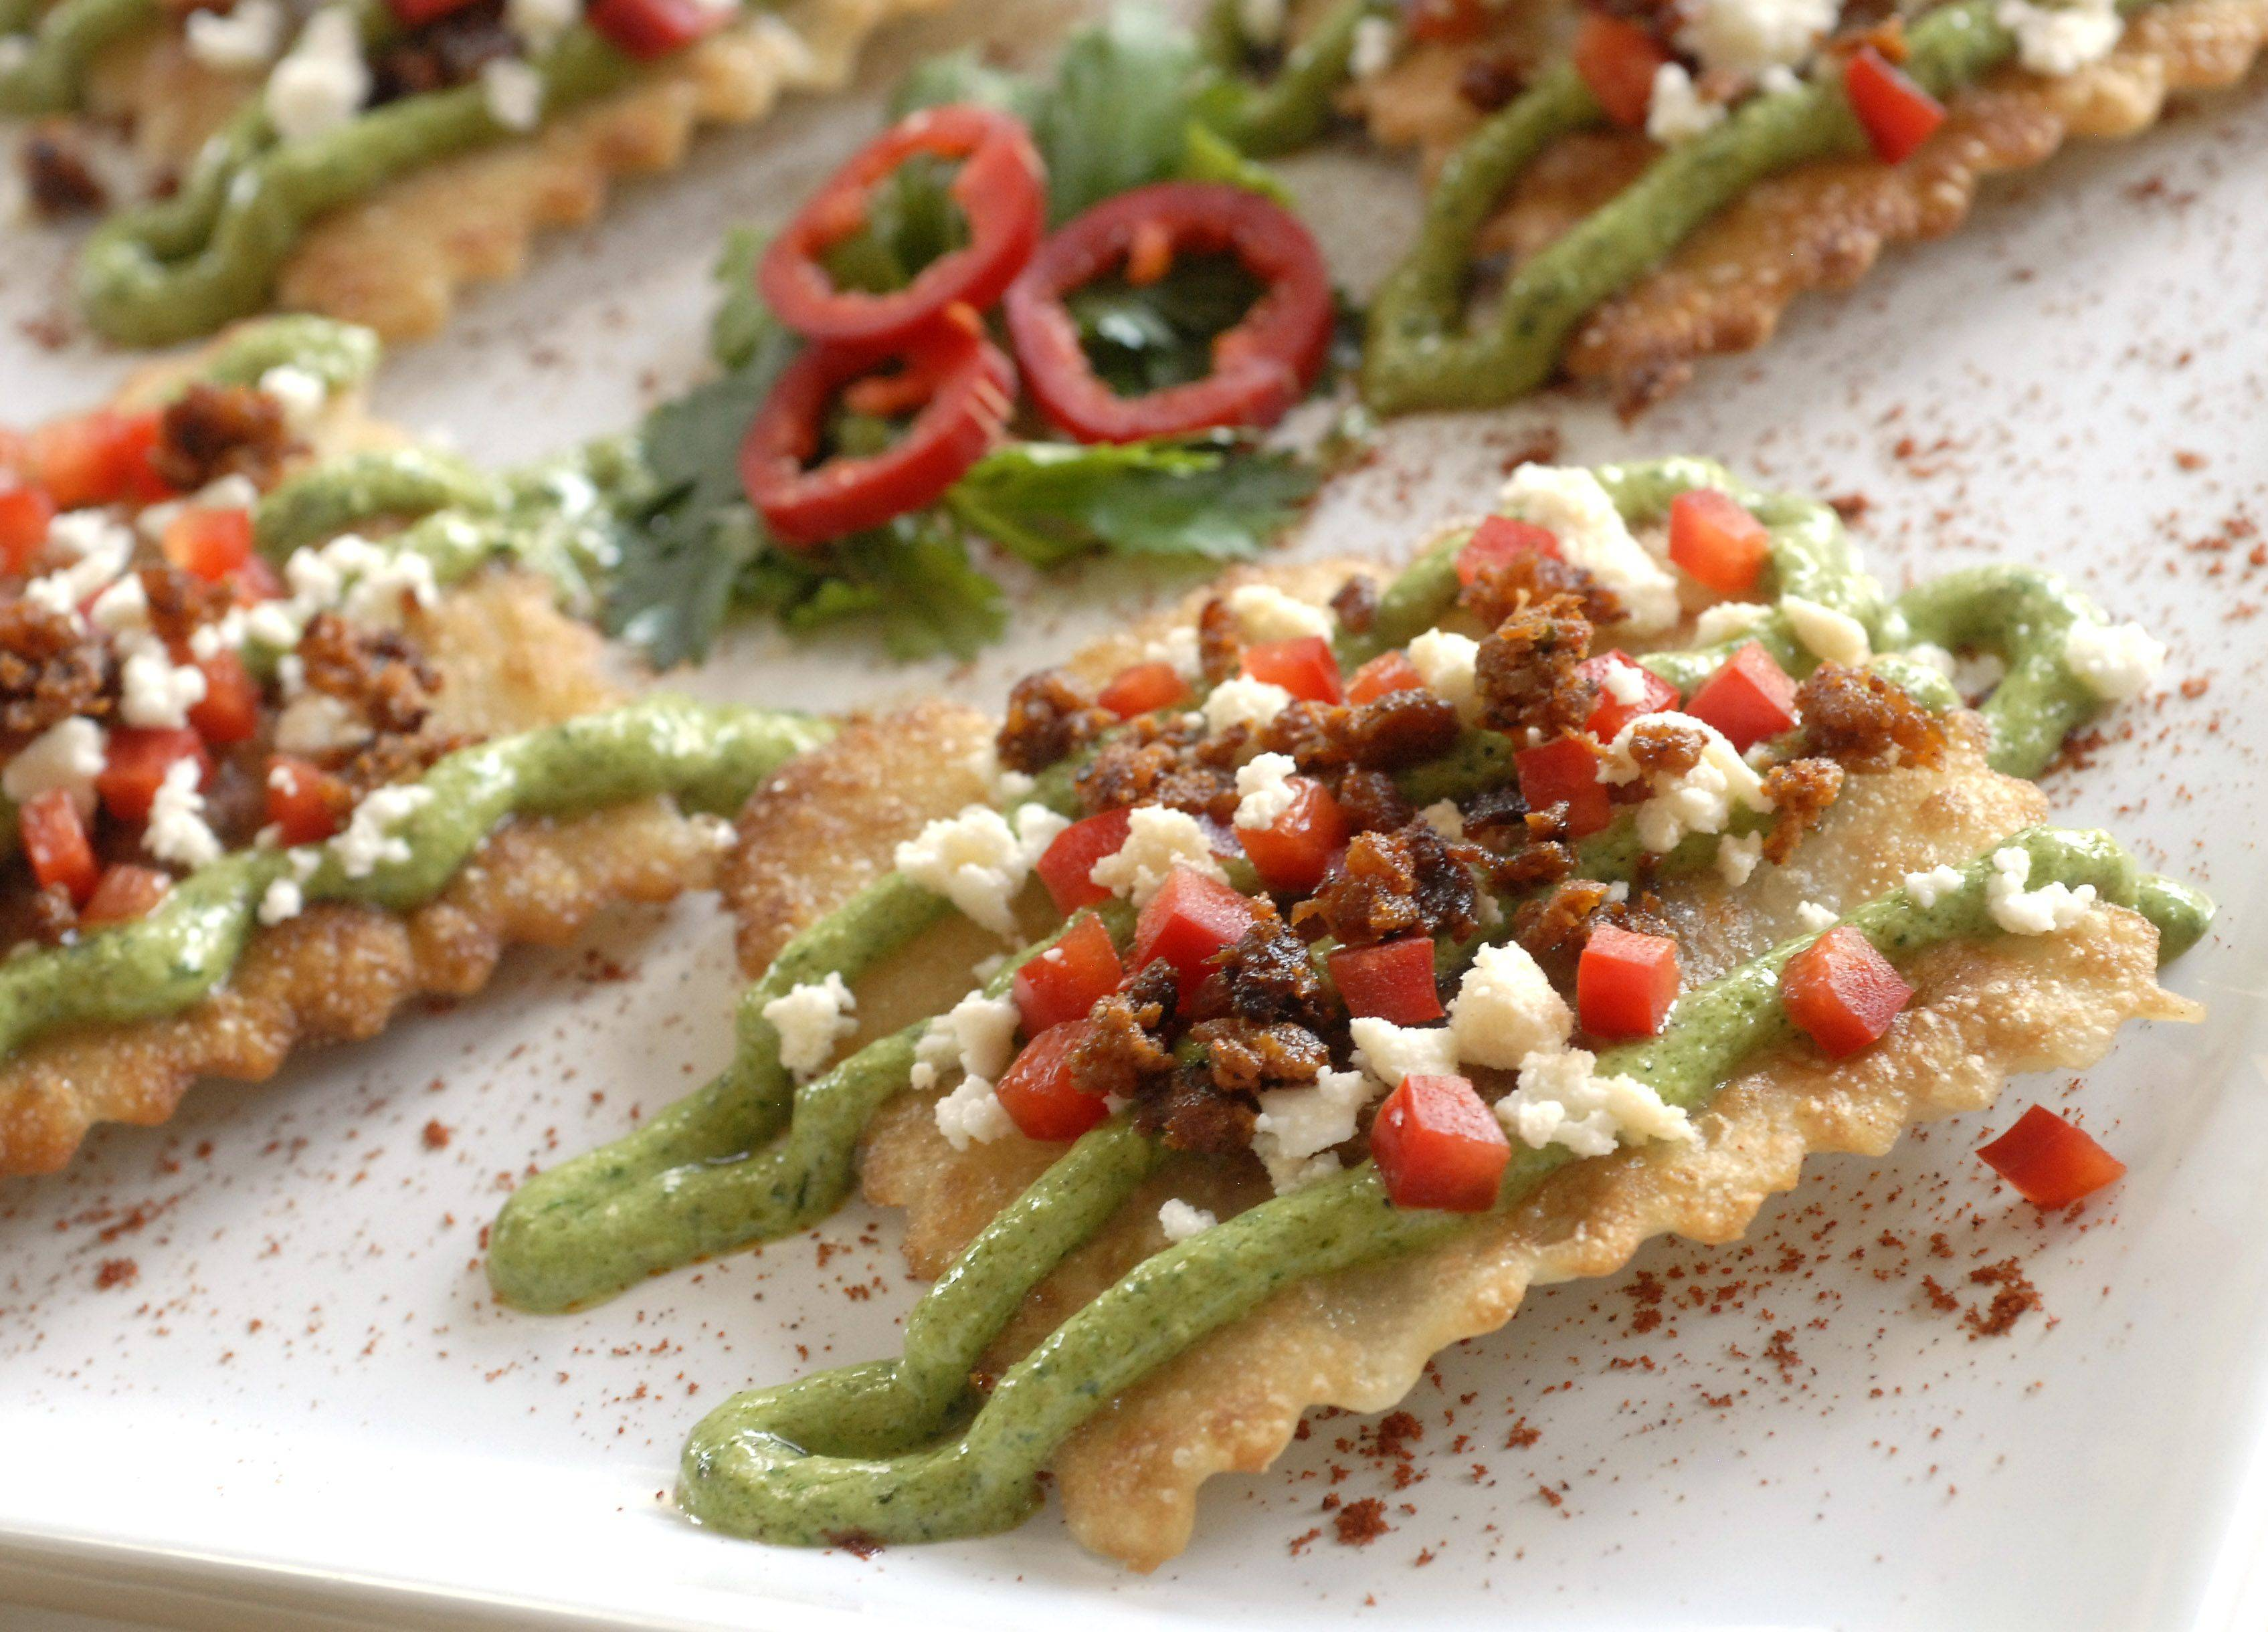 Pan Fried Chorizo Ravioli with Creamy Spinach Pesto from Mary Beth Riley of Elk Grove Village